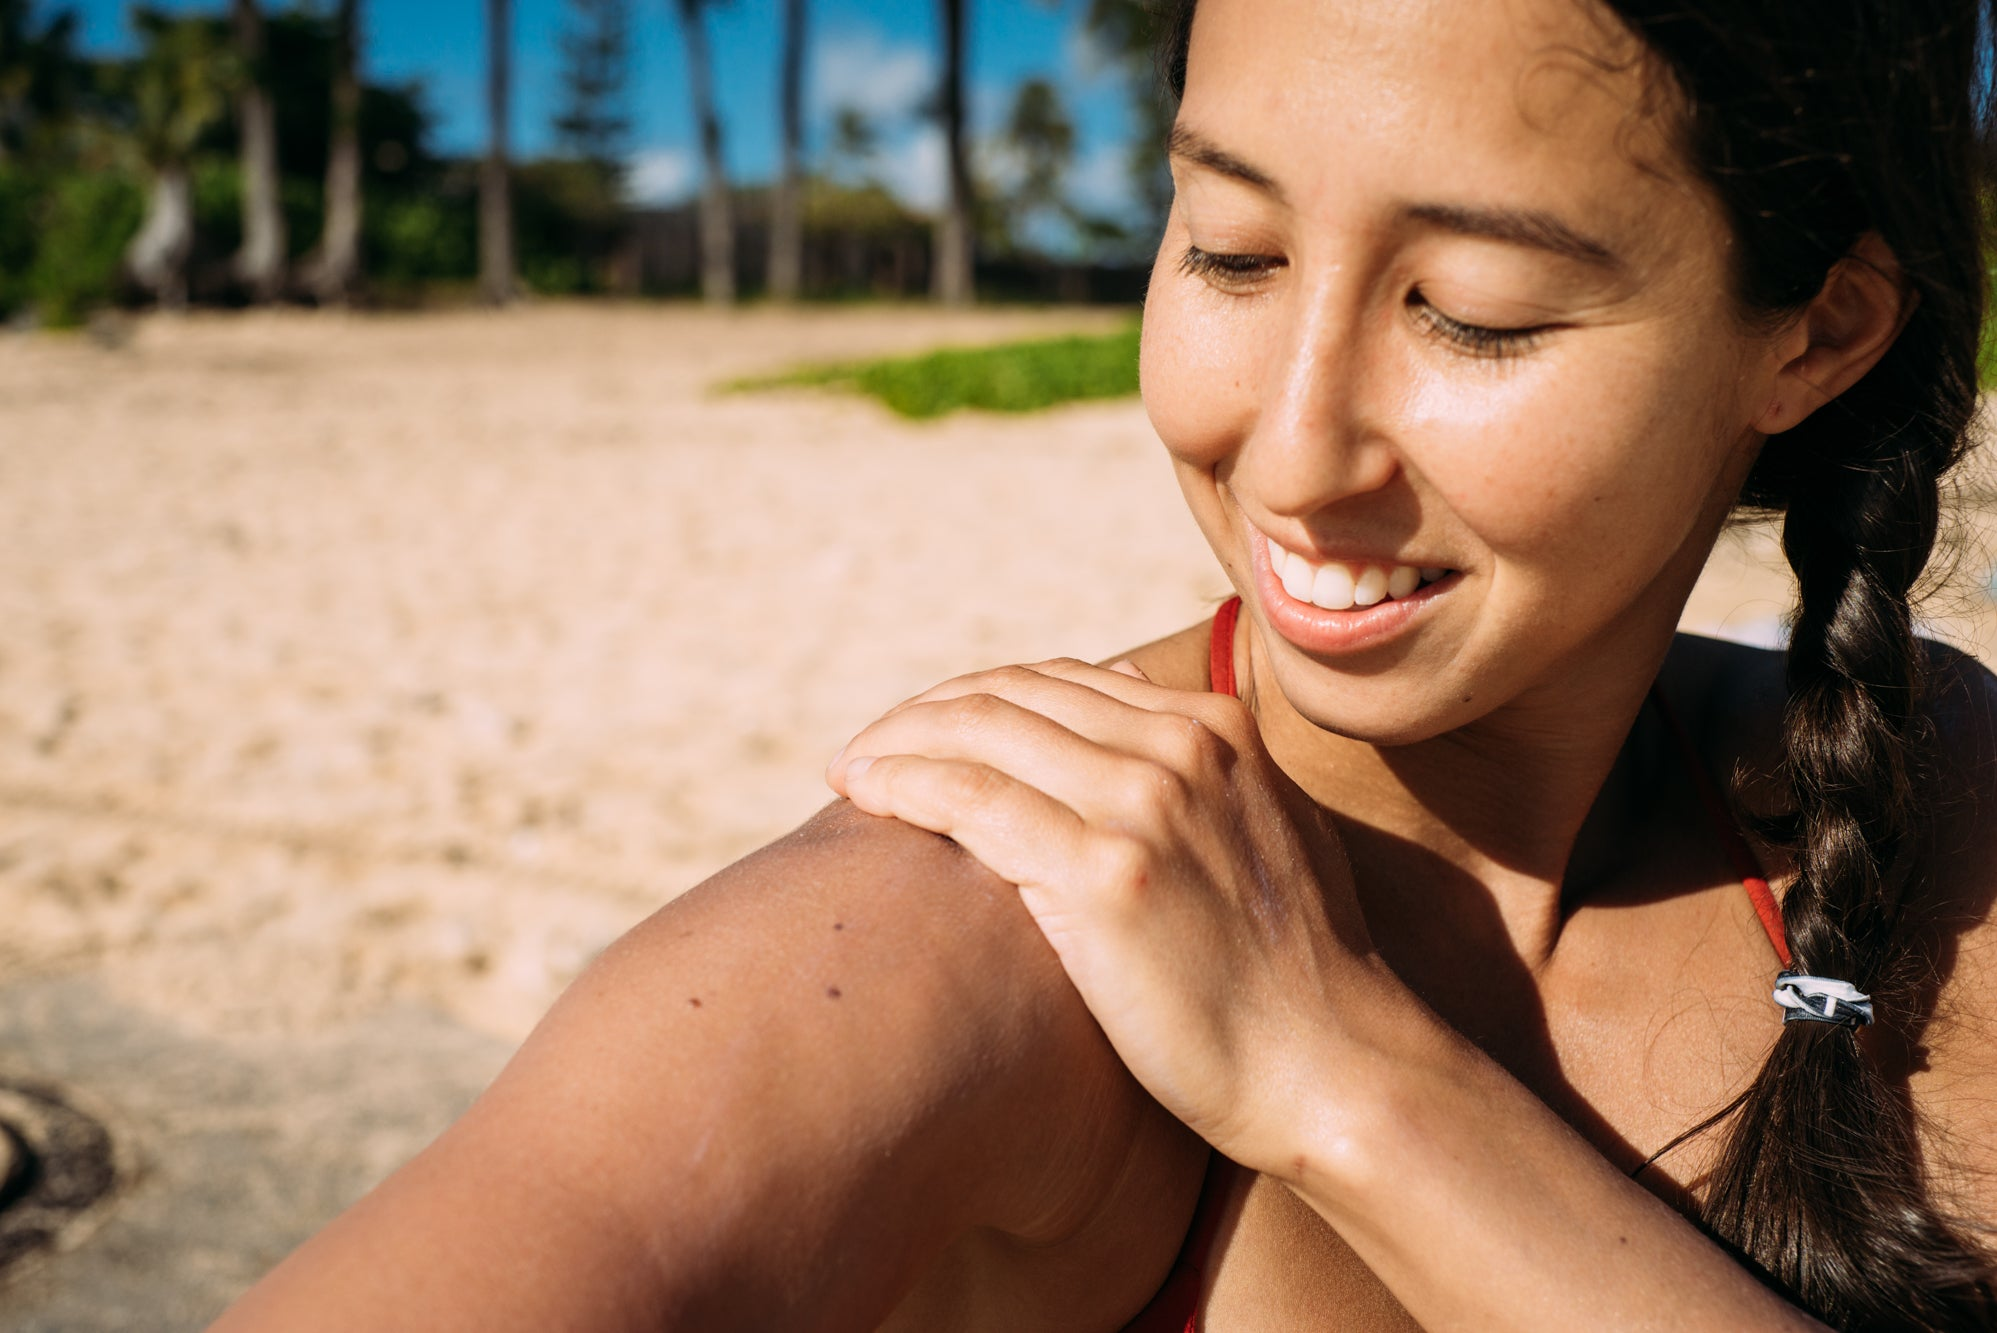 mineral sunscreens are better option - tropicsport